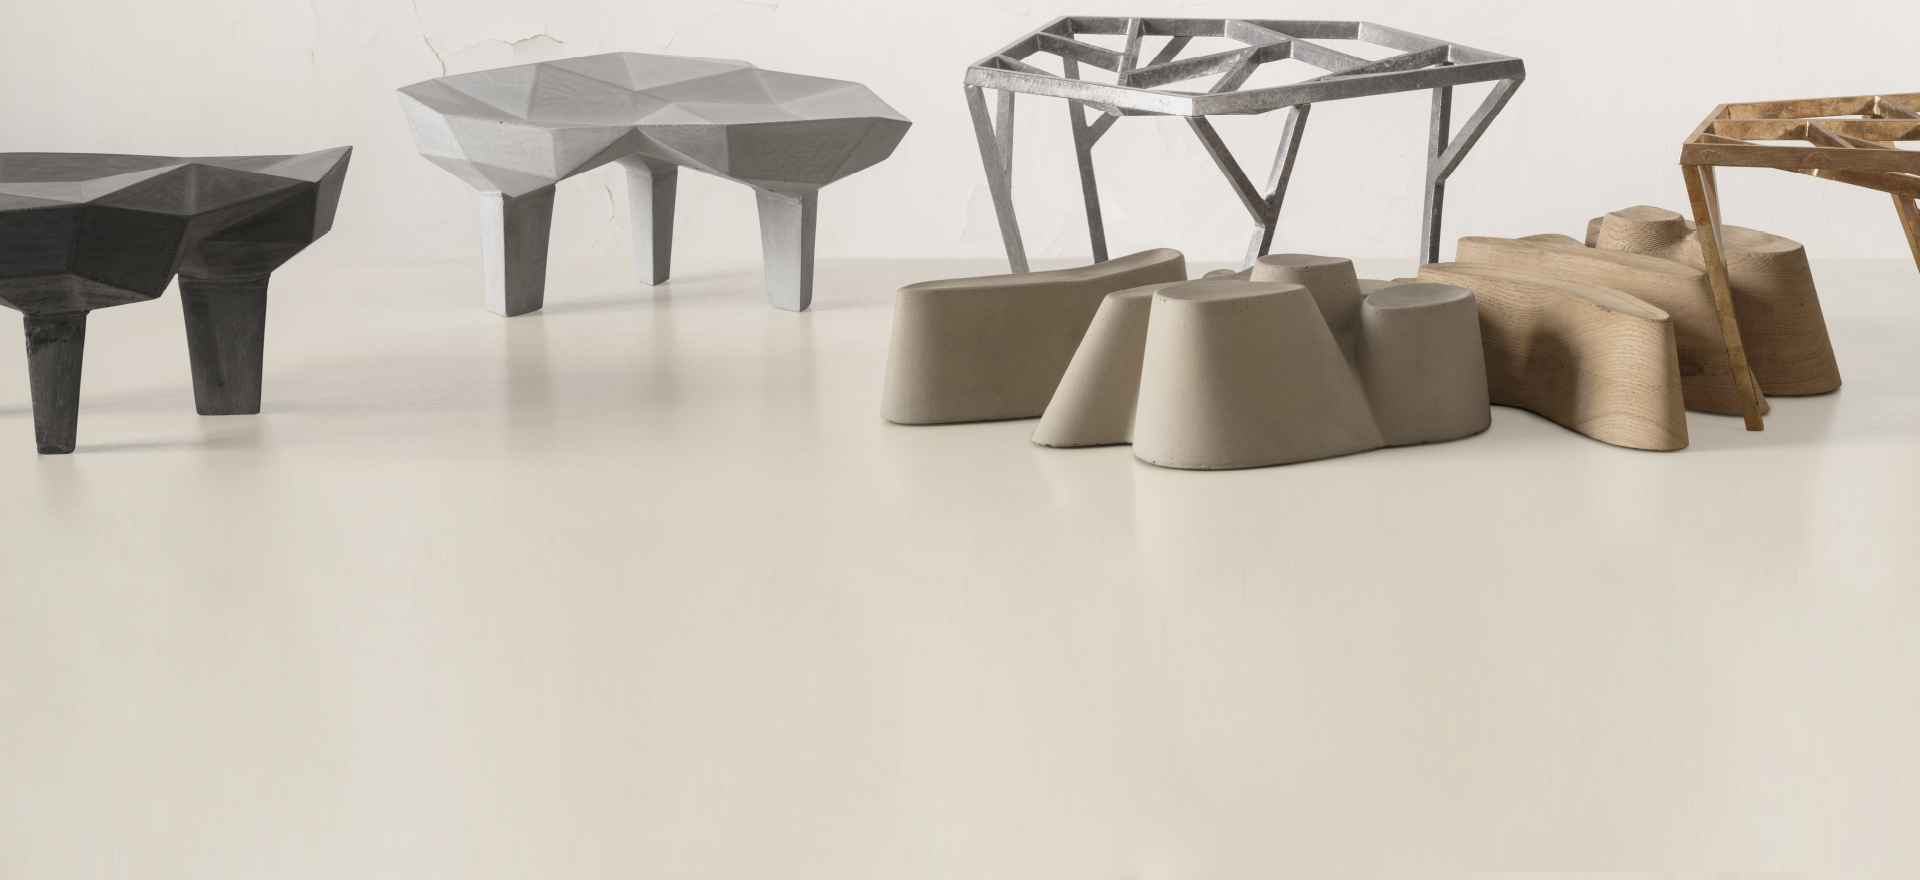 Fruit trays and center pieces by Mario Trimarchi for Alias, in a neutral background with a light projecting soft shadows.